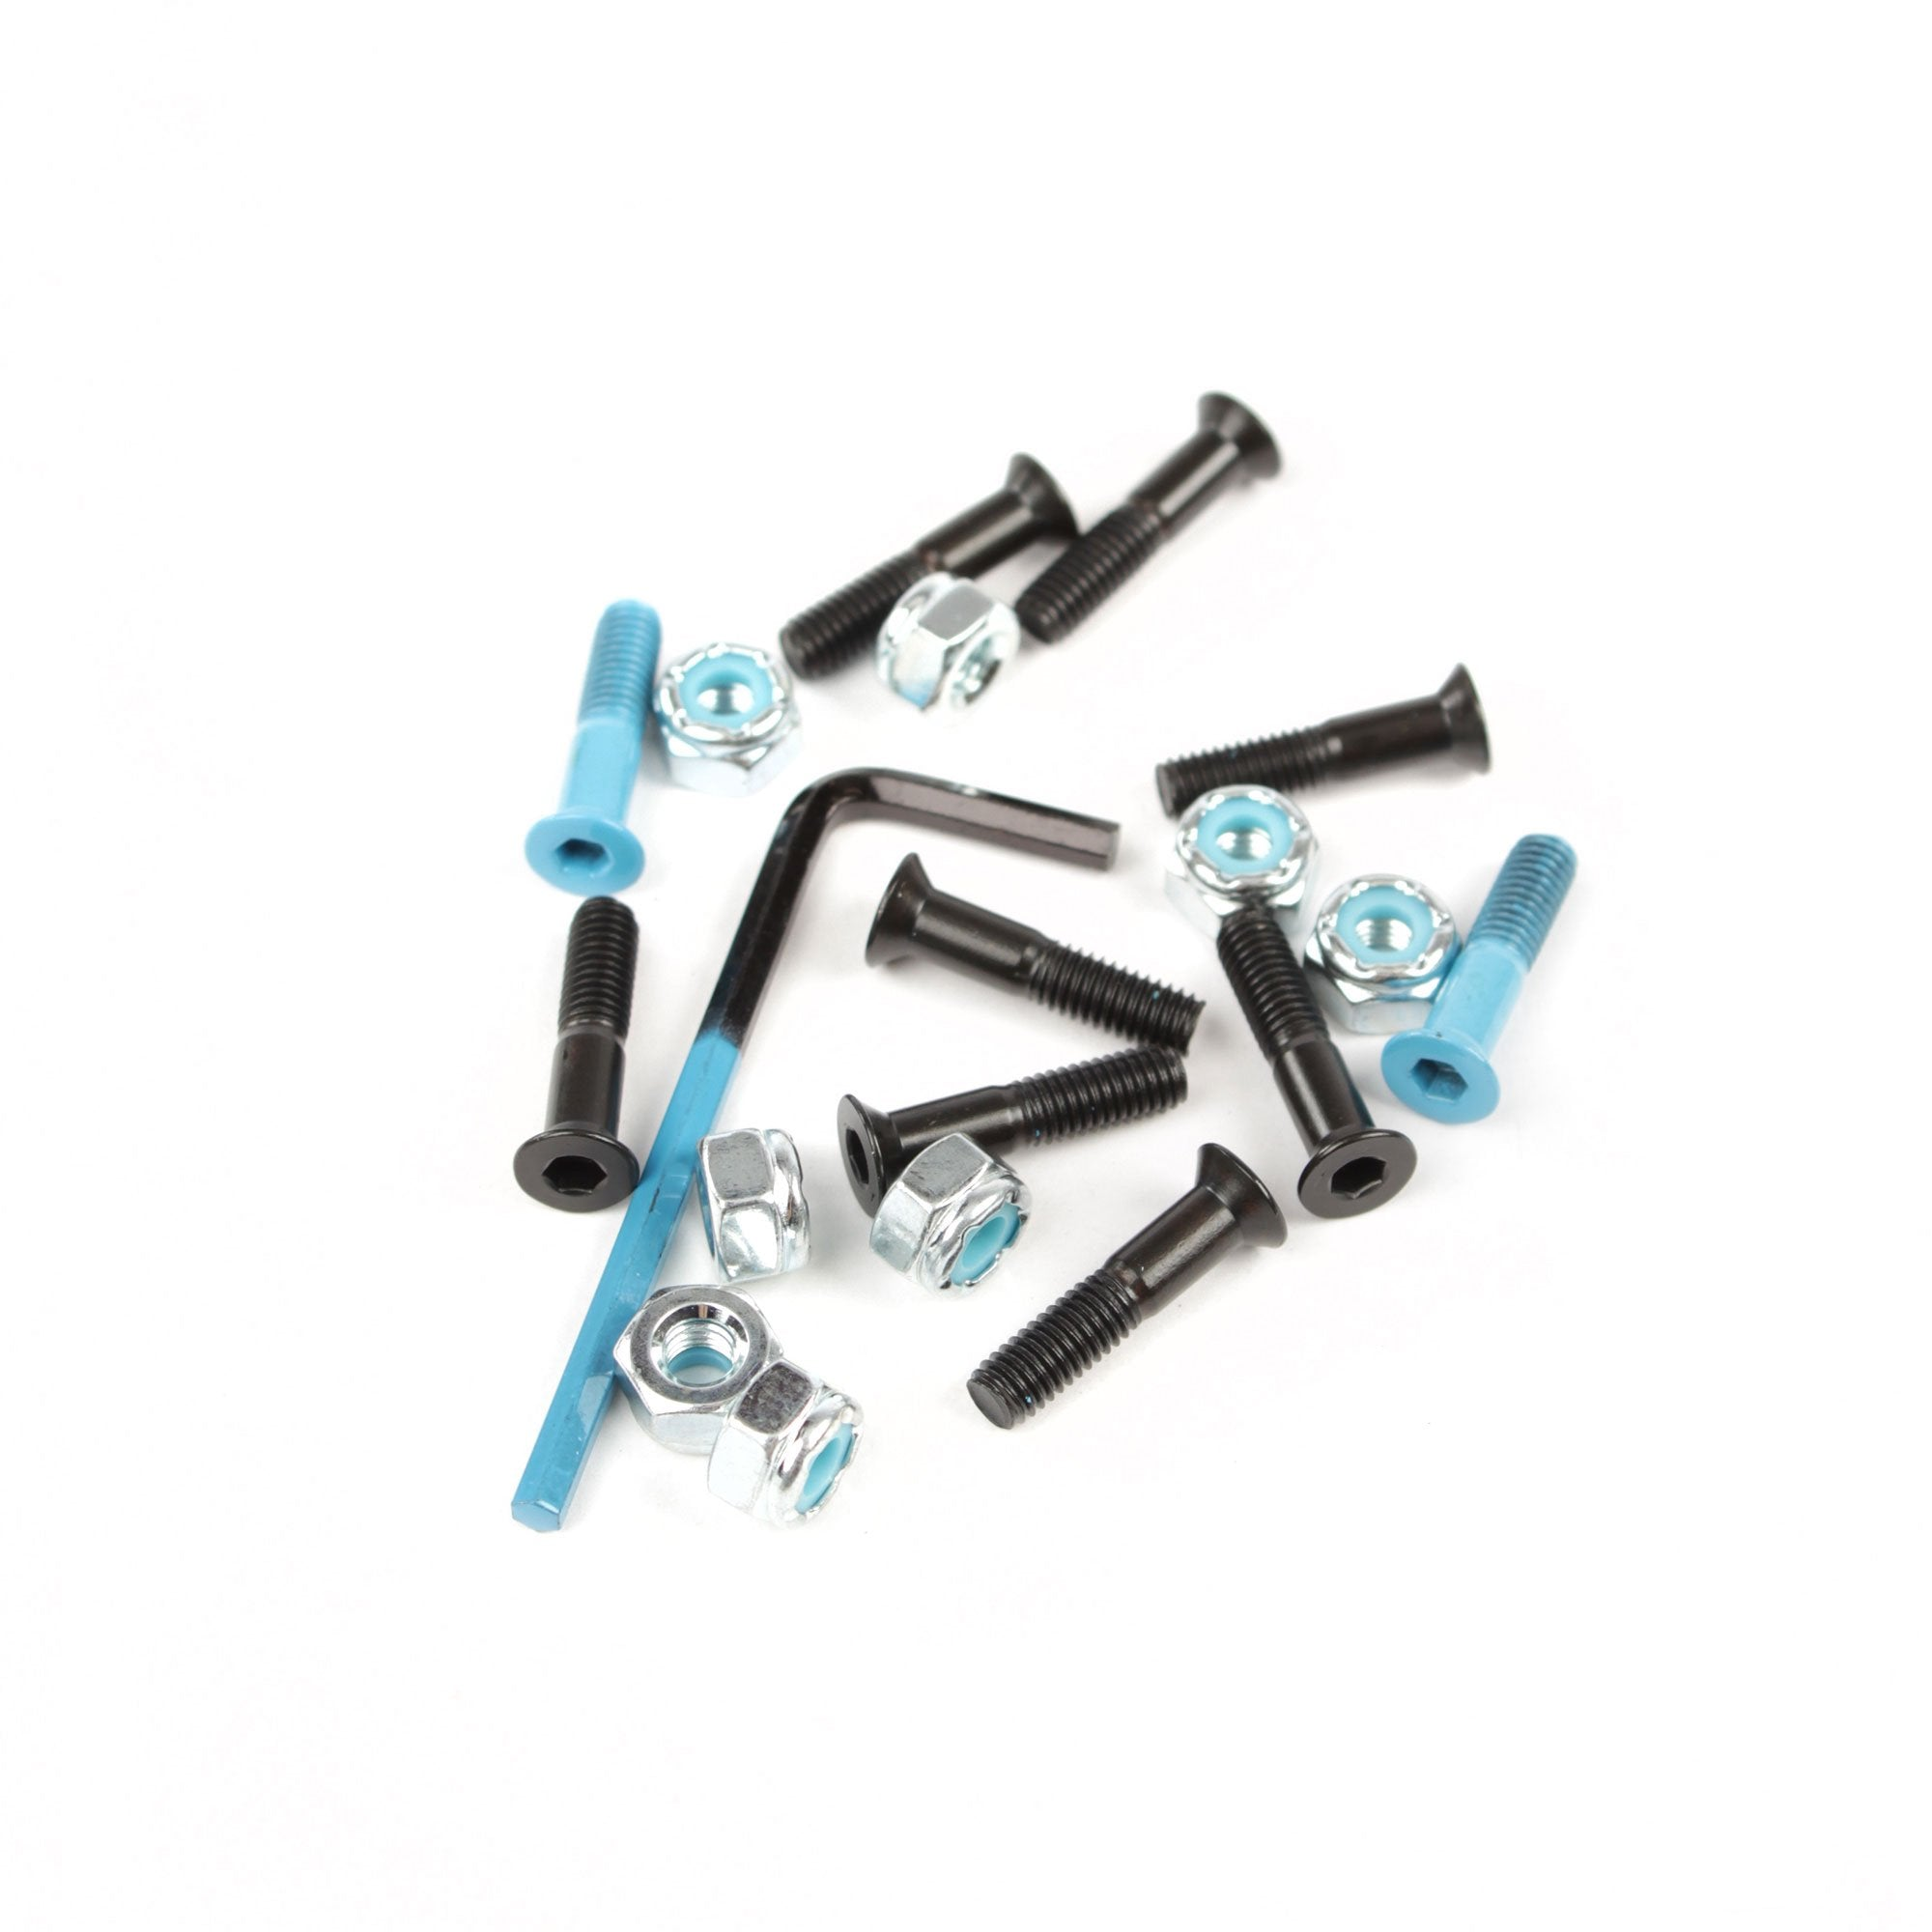 Modus Bolts Product Photo #2